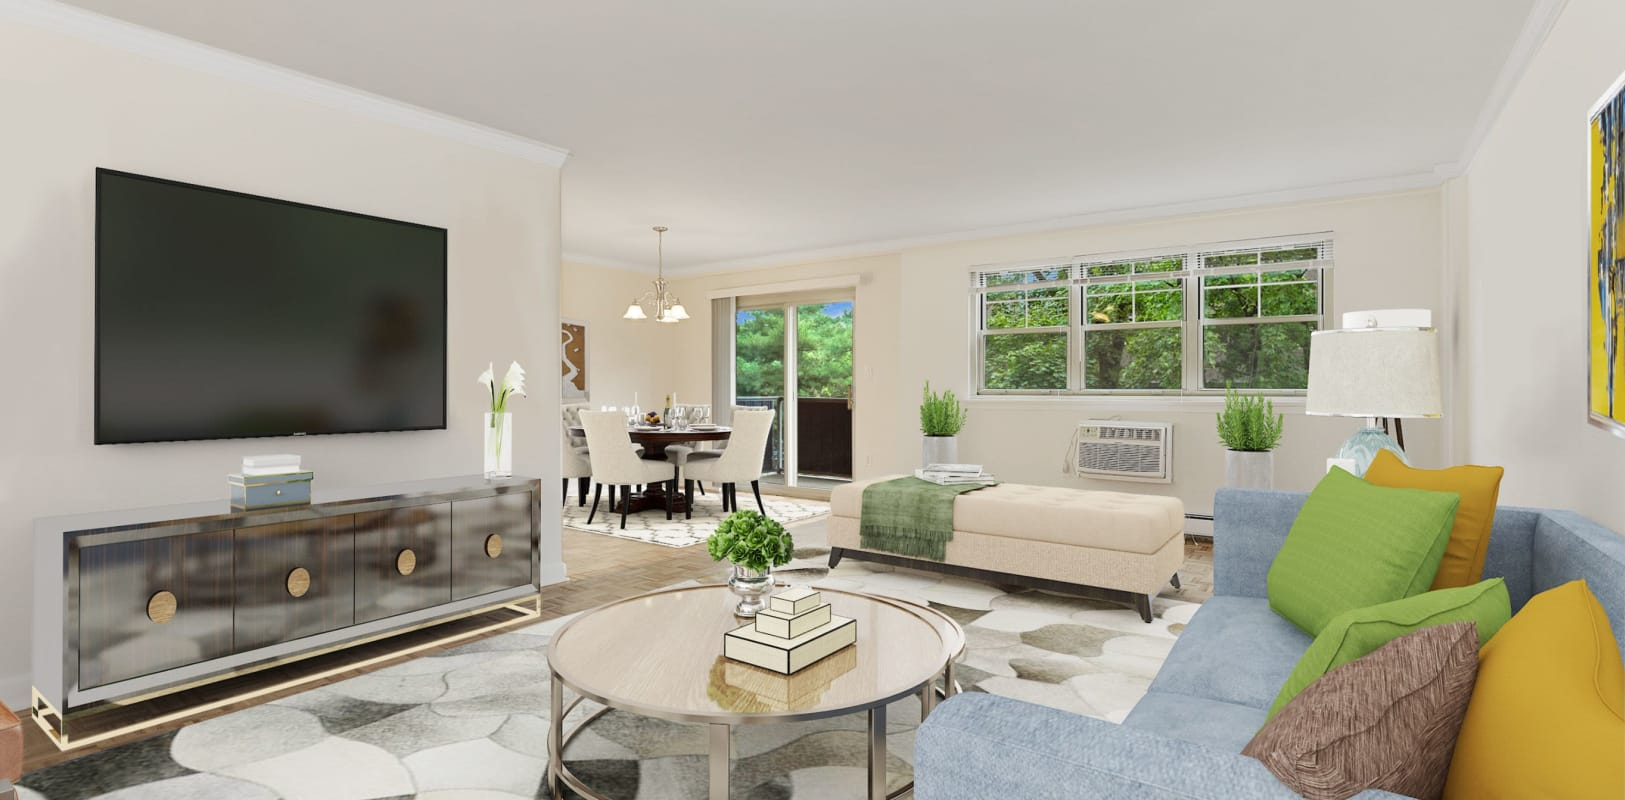 Living room at Hamilton Court in Morristown, New Jersey